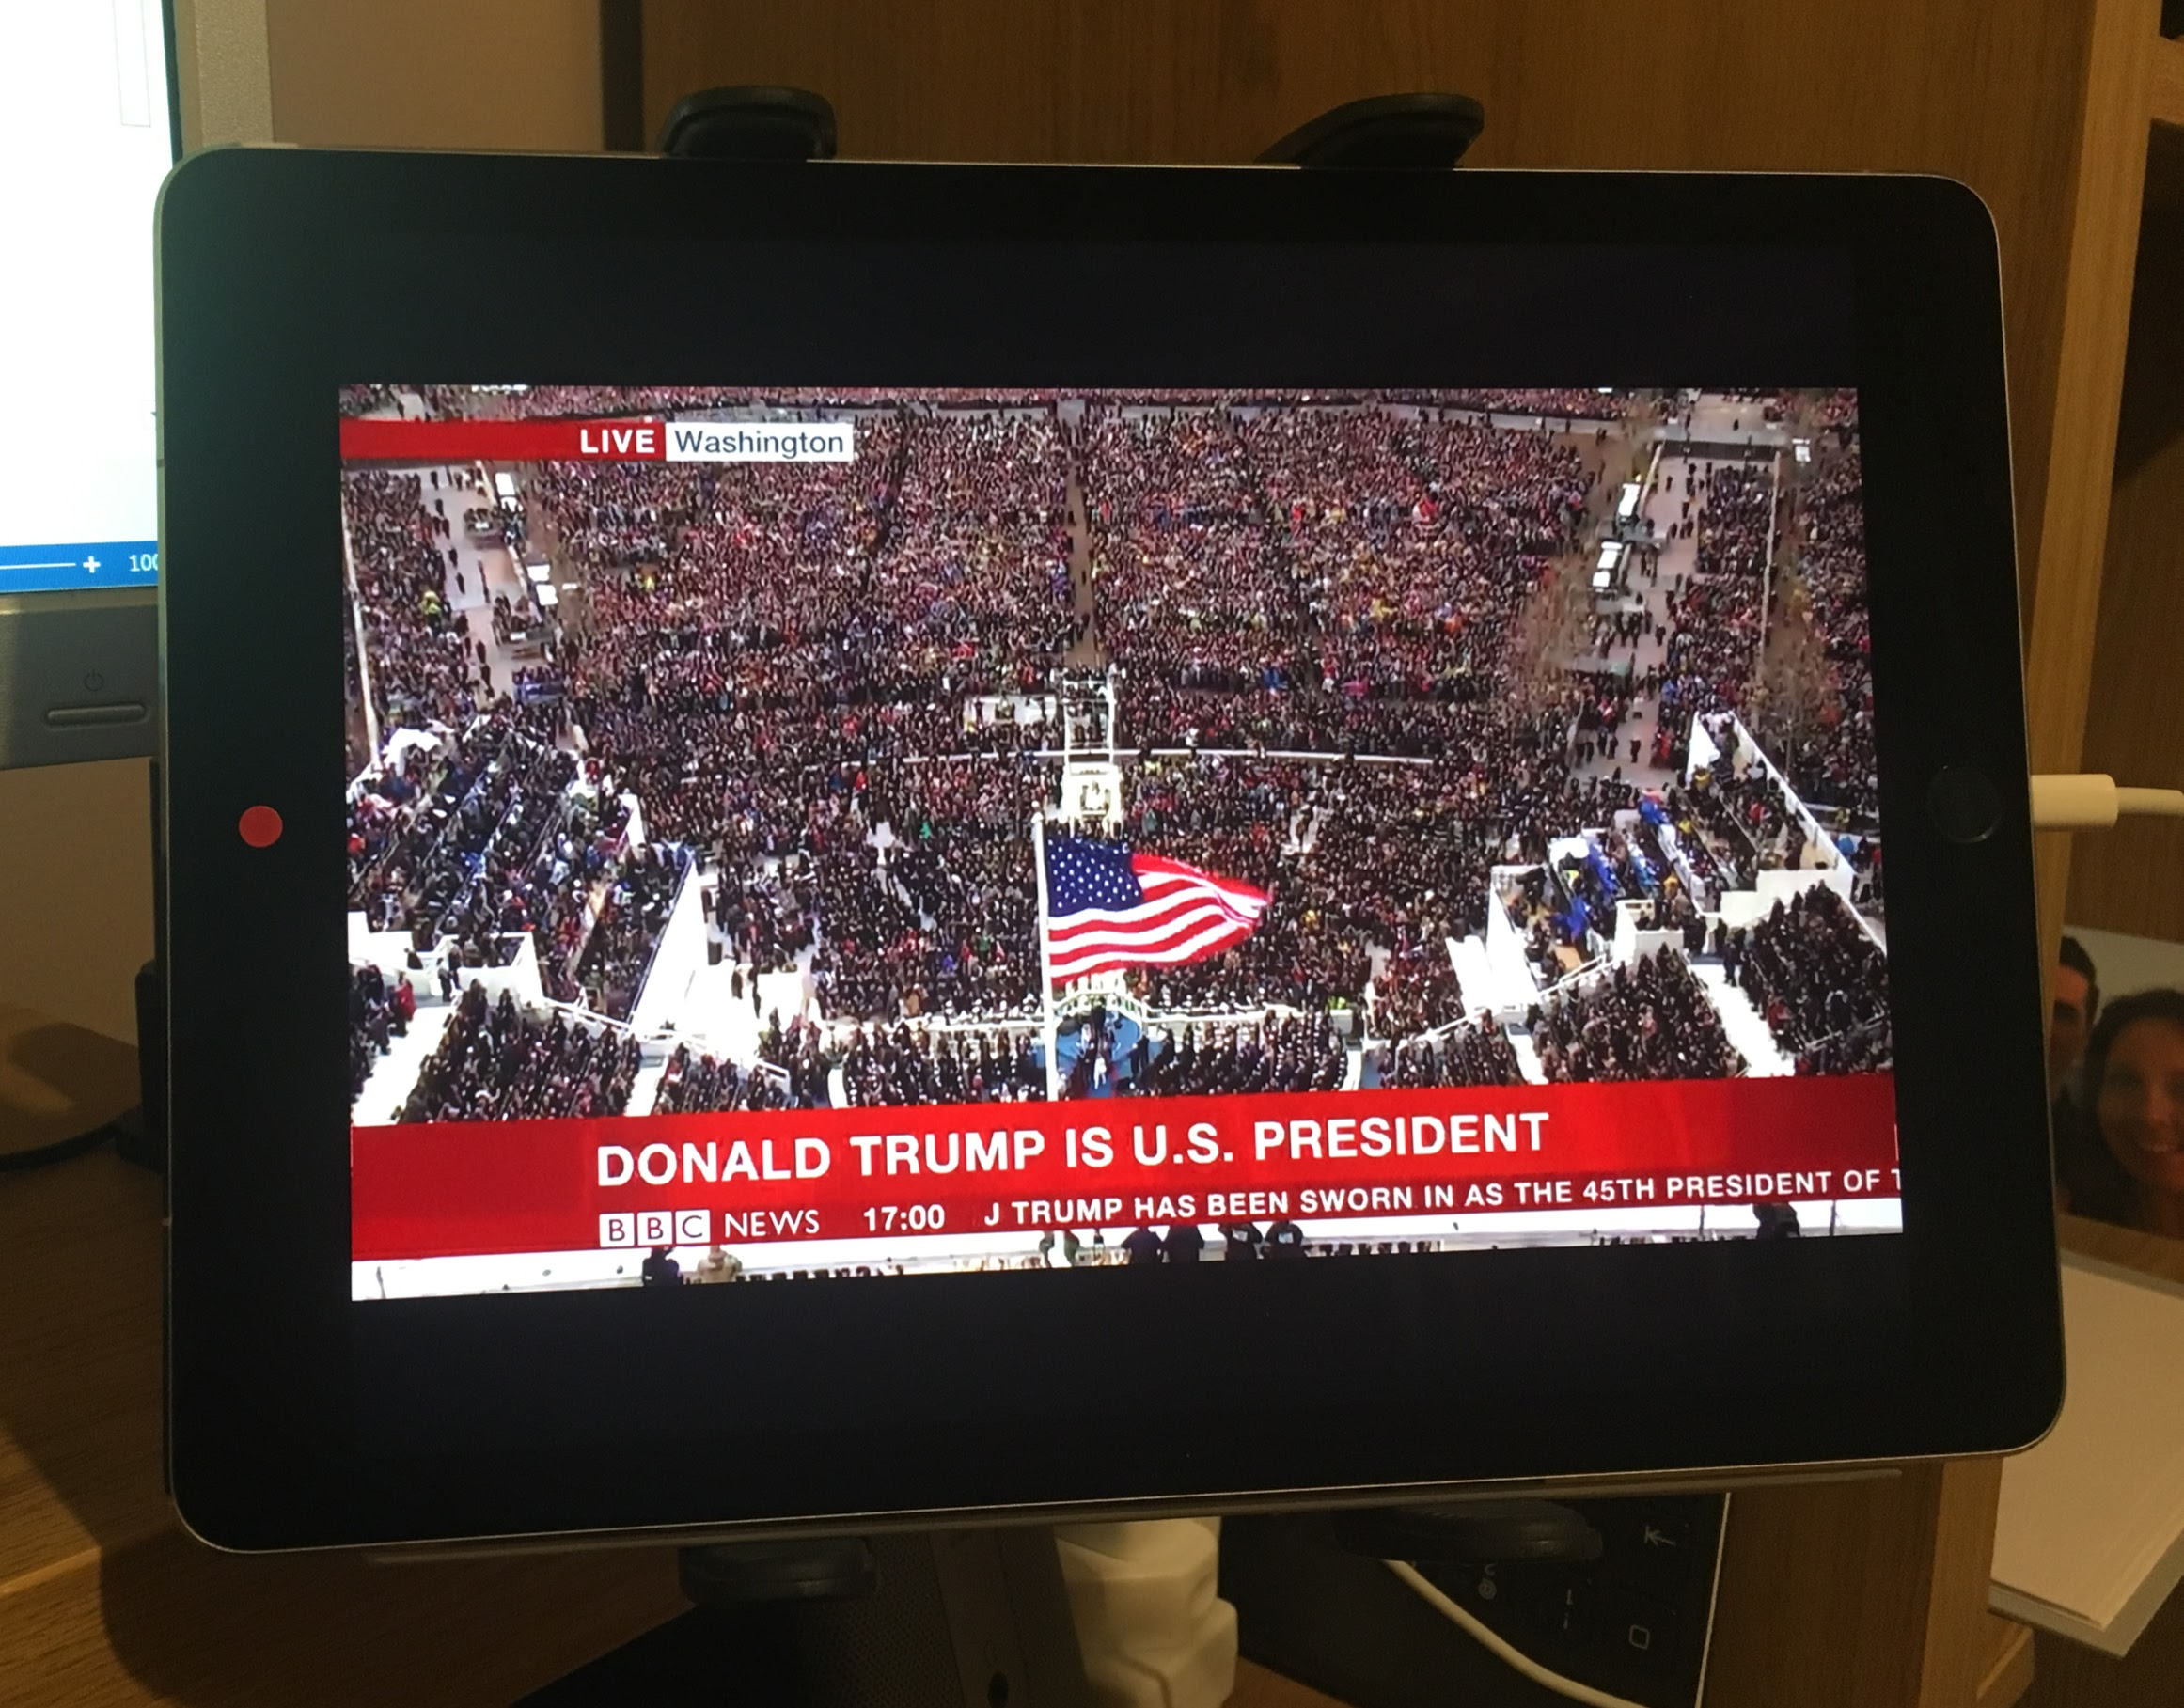 My View of Trump's Inaguration